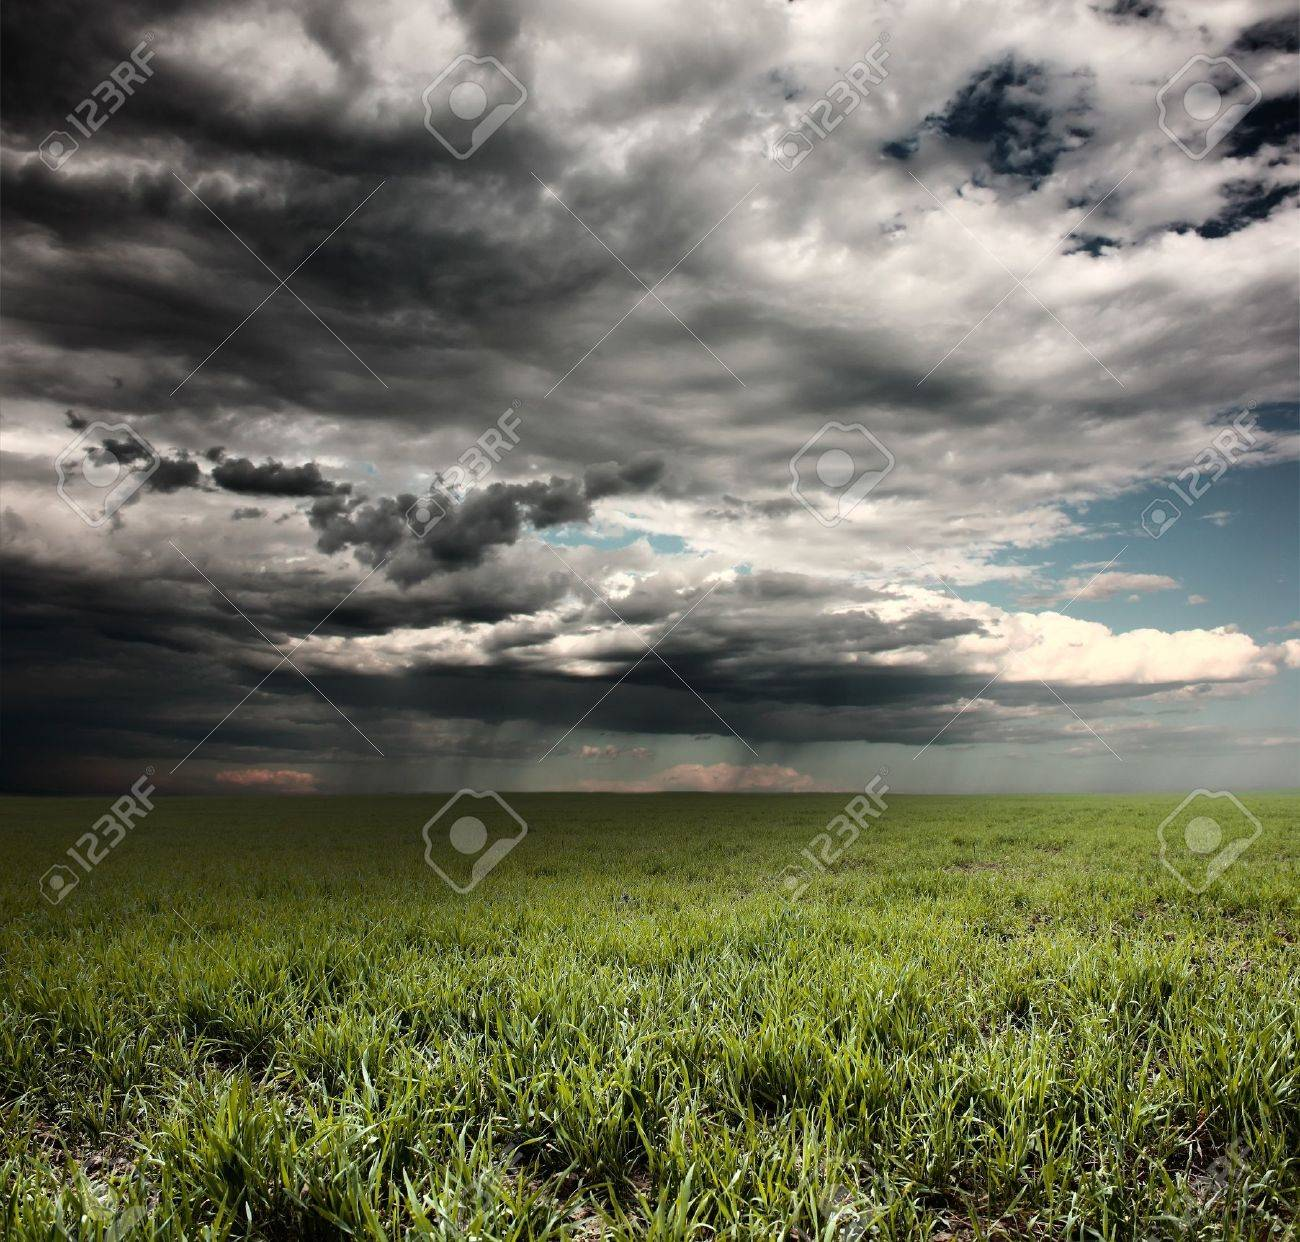 Storm clouds with rain over meadow with green grass Stock Photo - 7296703